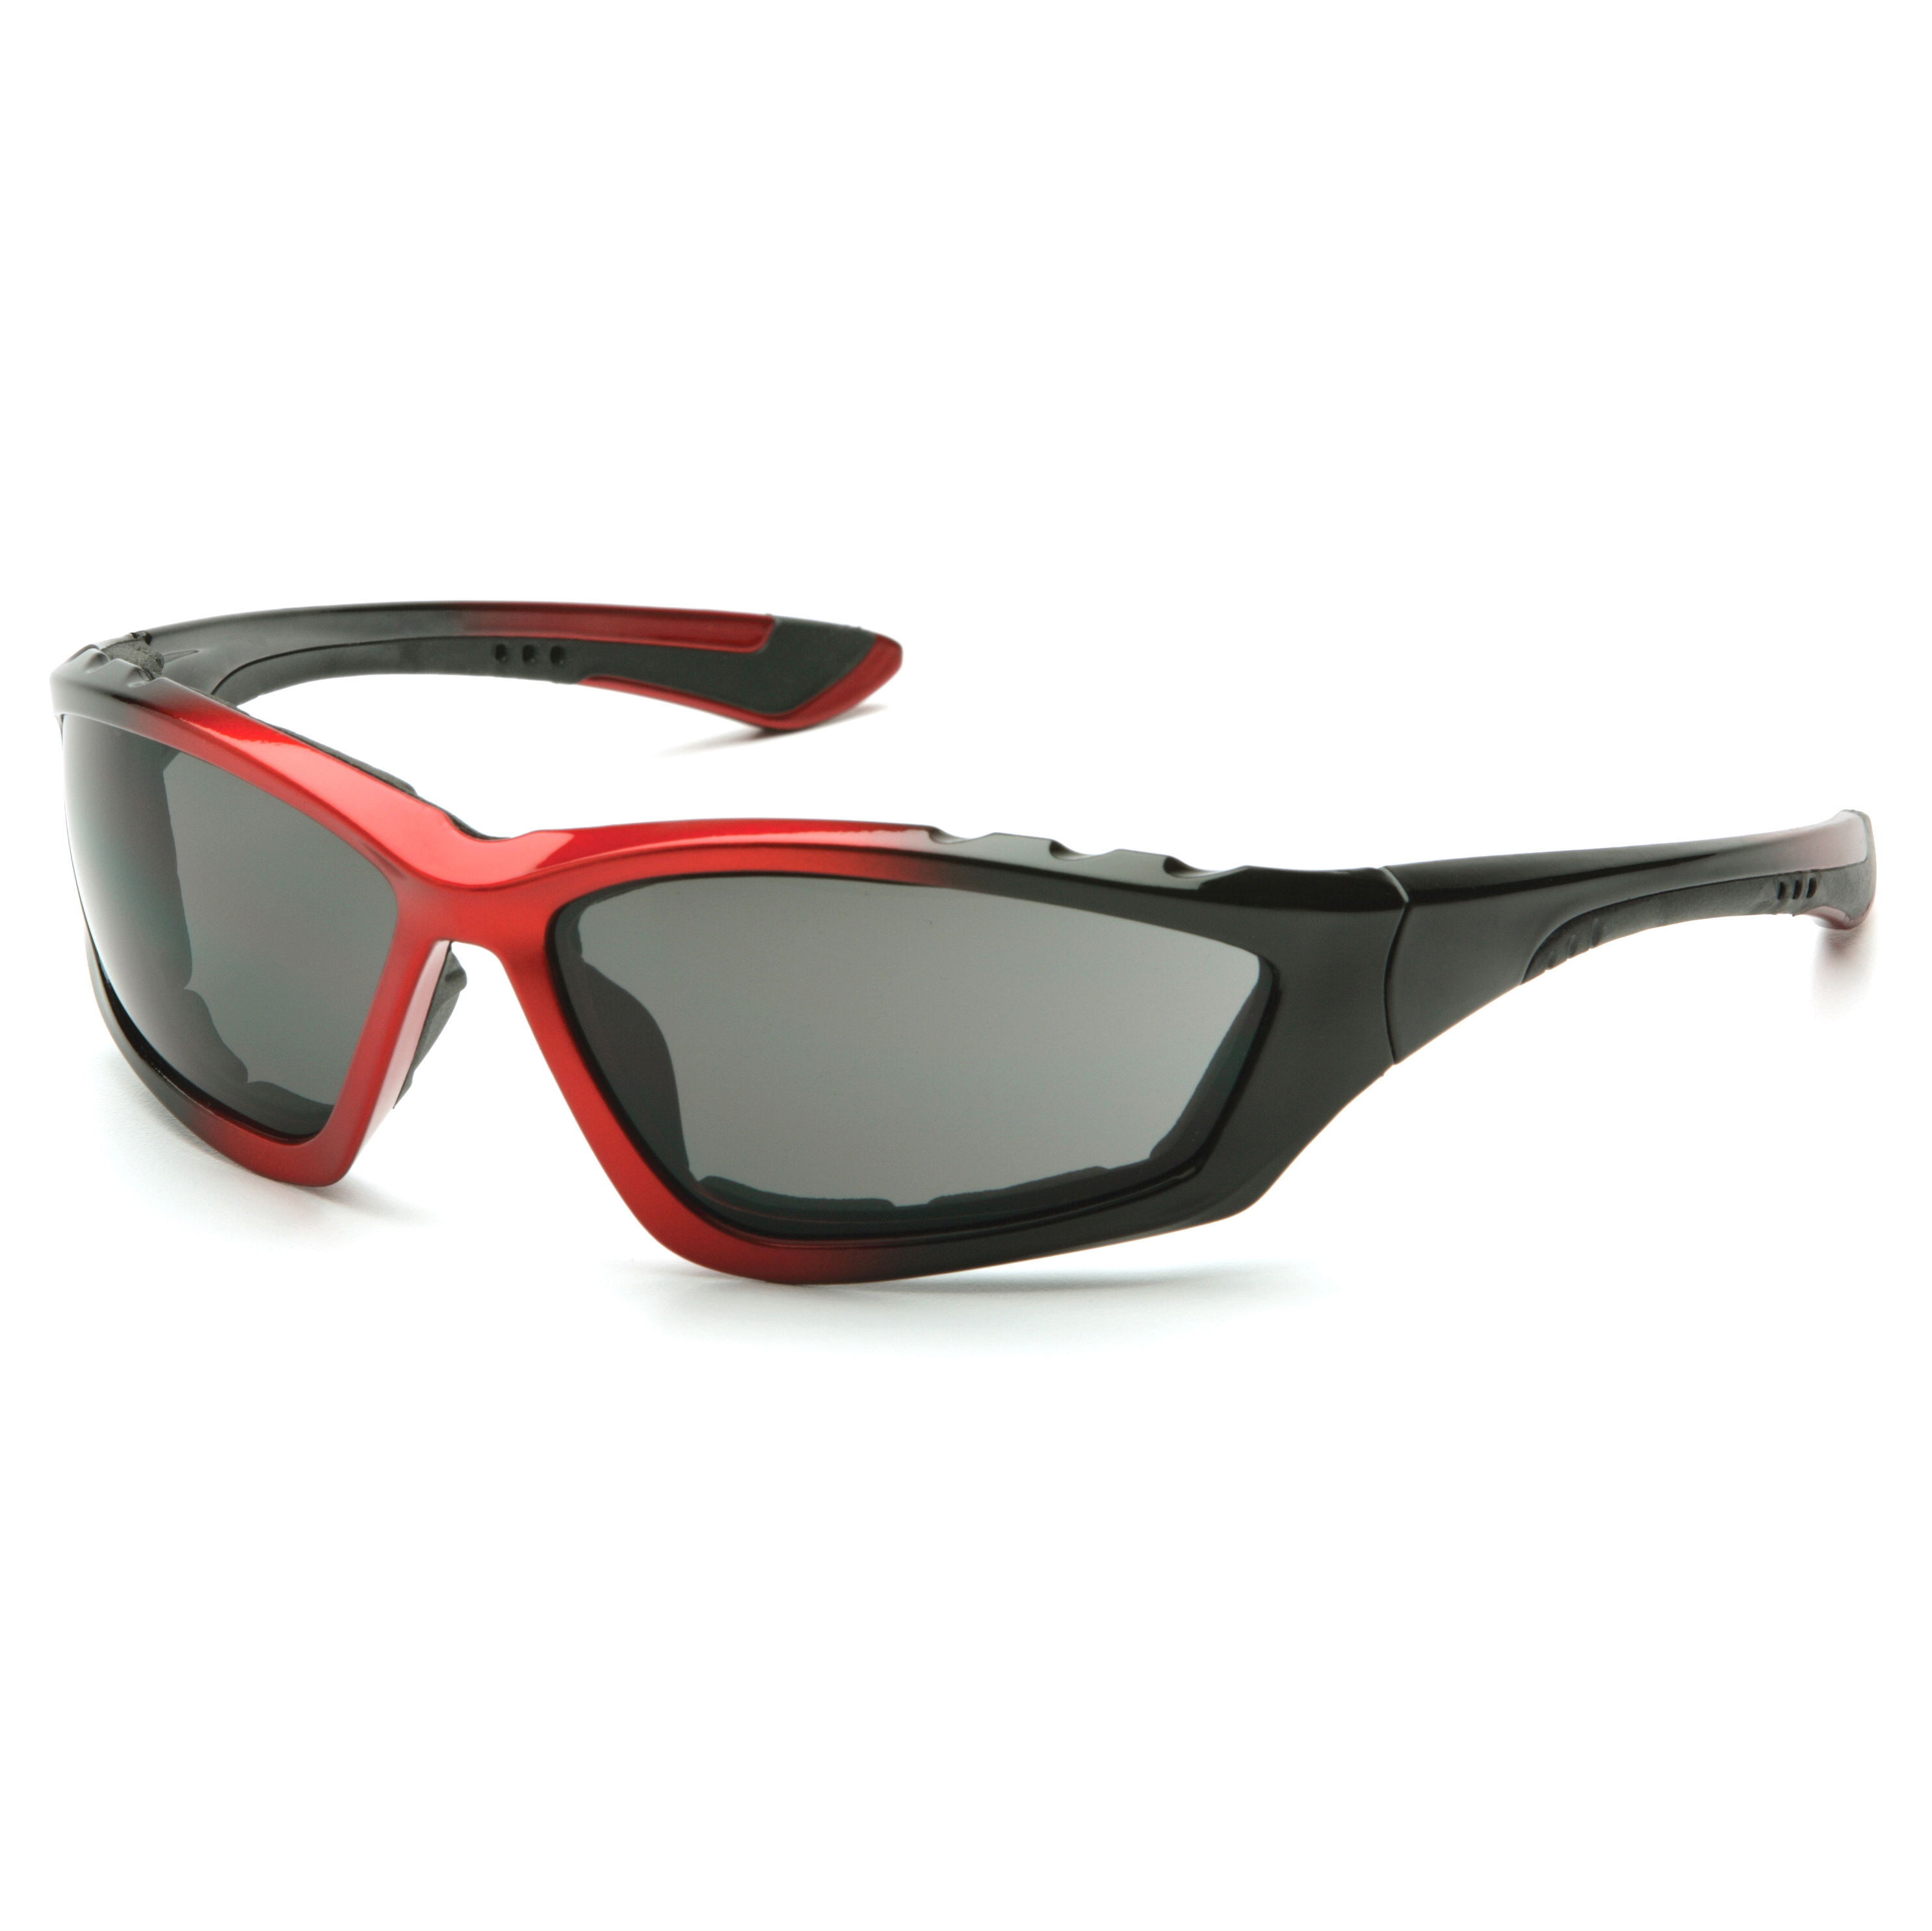 Impact Products 8805101 safety goggles